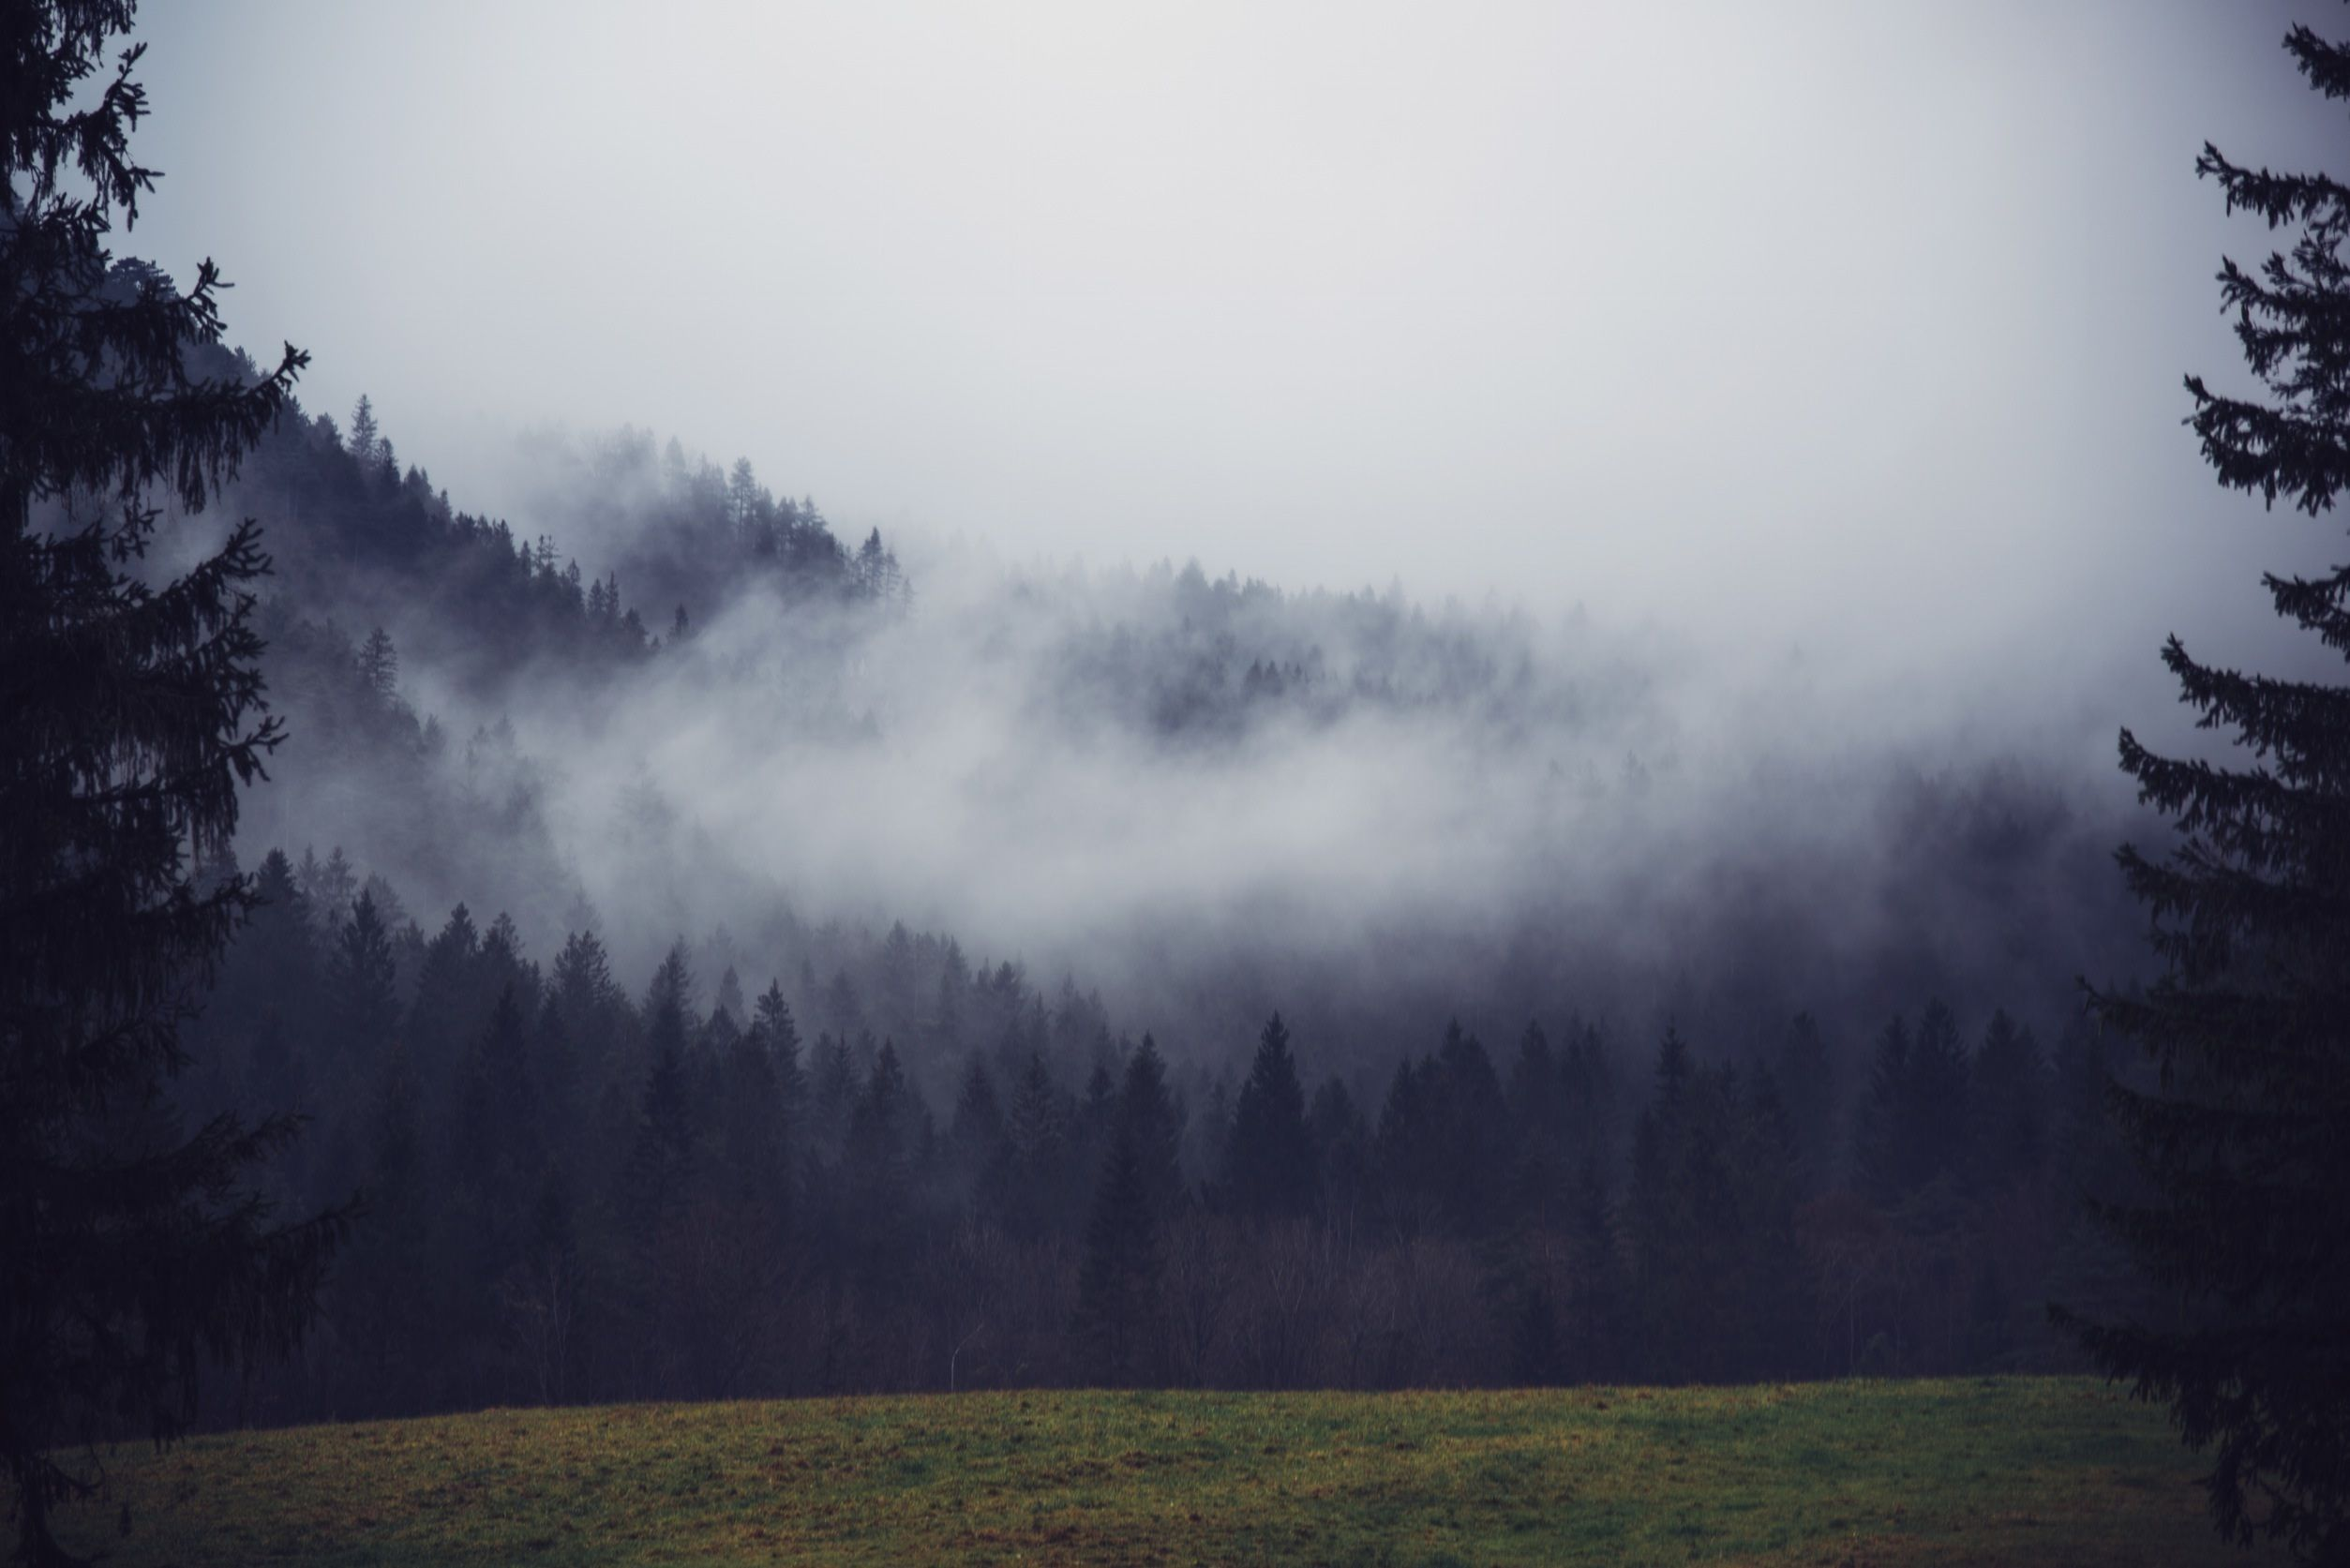 Landscape Tree Nature Forest Wilderness Mountain Cloud Fog Sunrise Mist Countryside Sunlight Morning Hill Dawn Mountain Range Landscape Scenic Witch Aesthetic Dawn forest deer trees fog nature